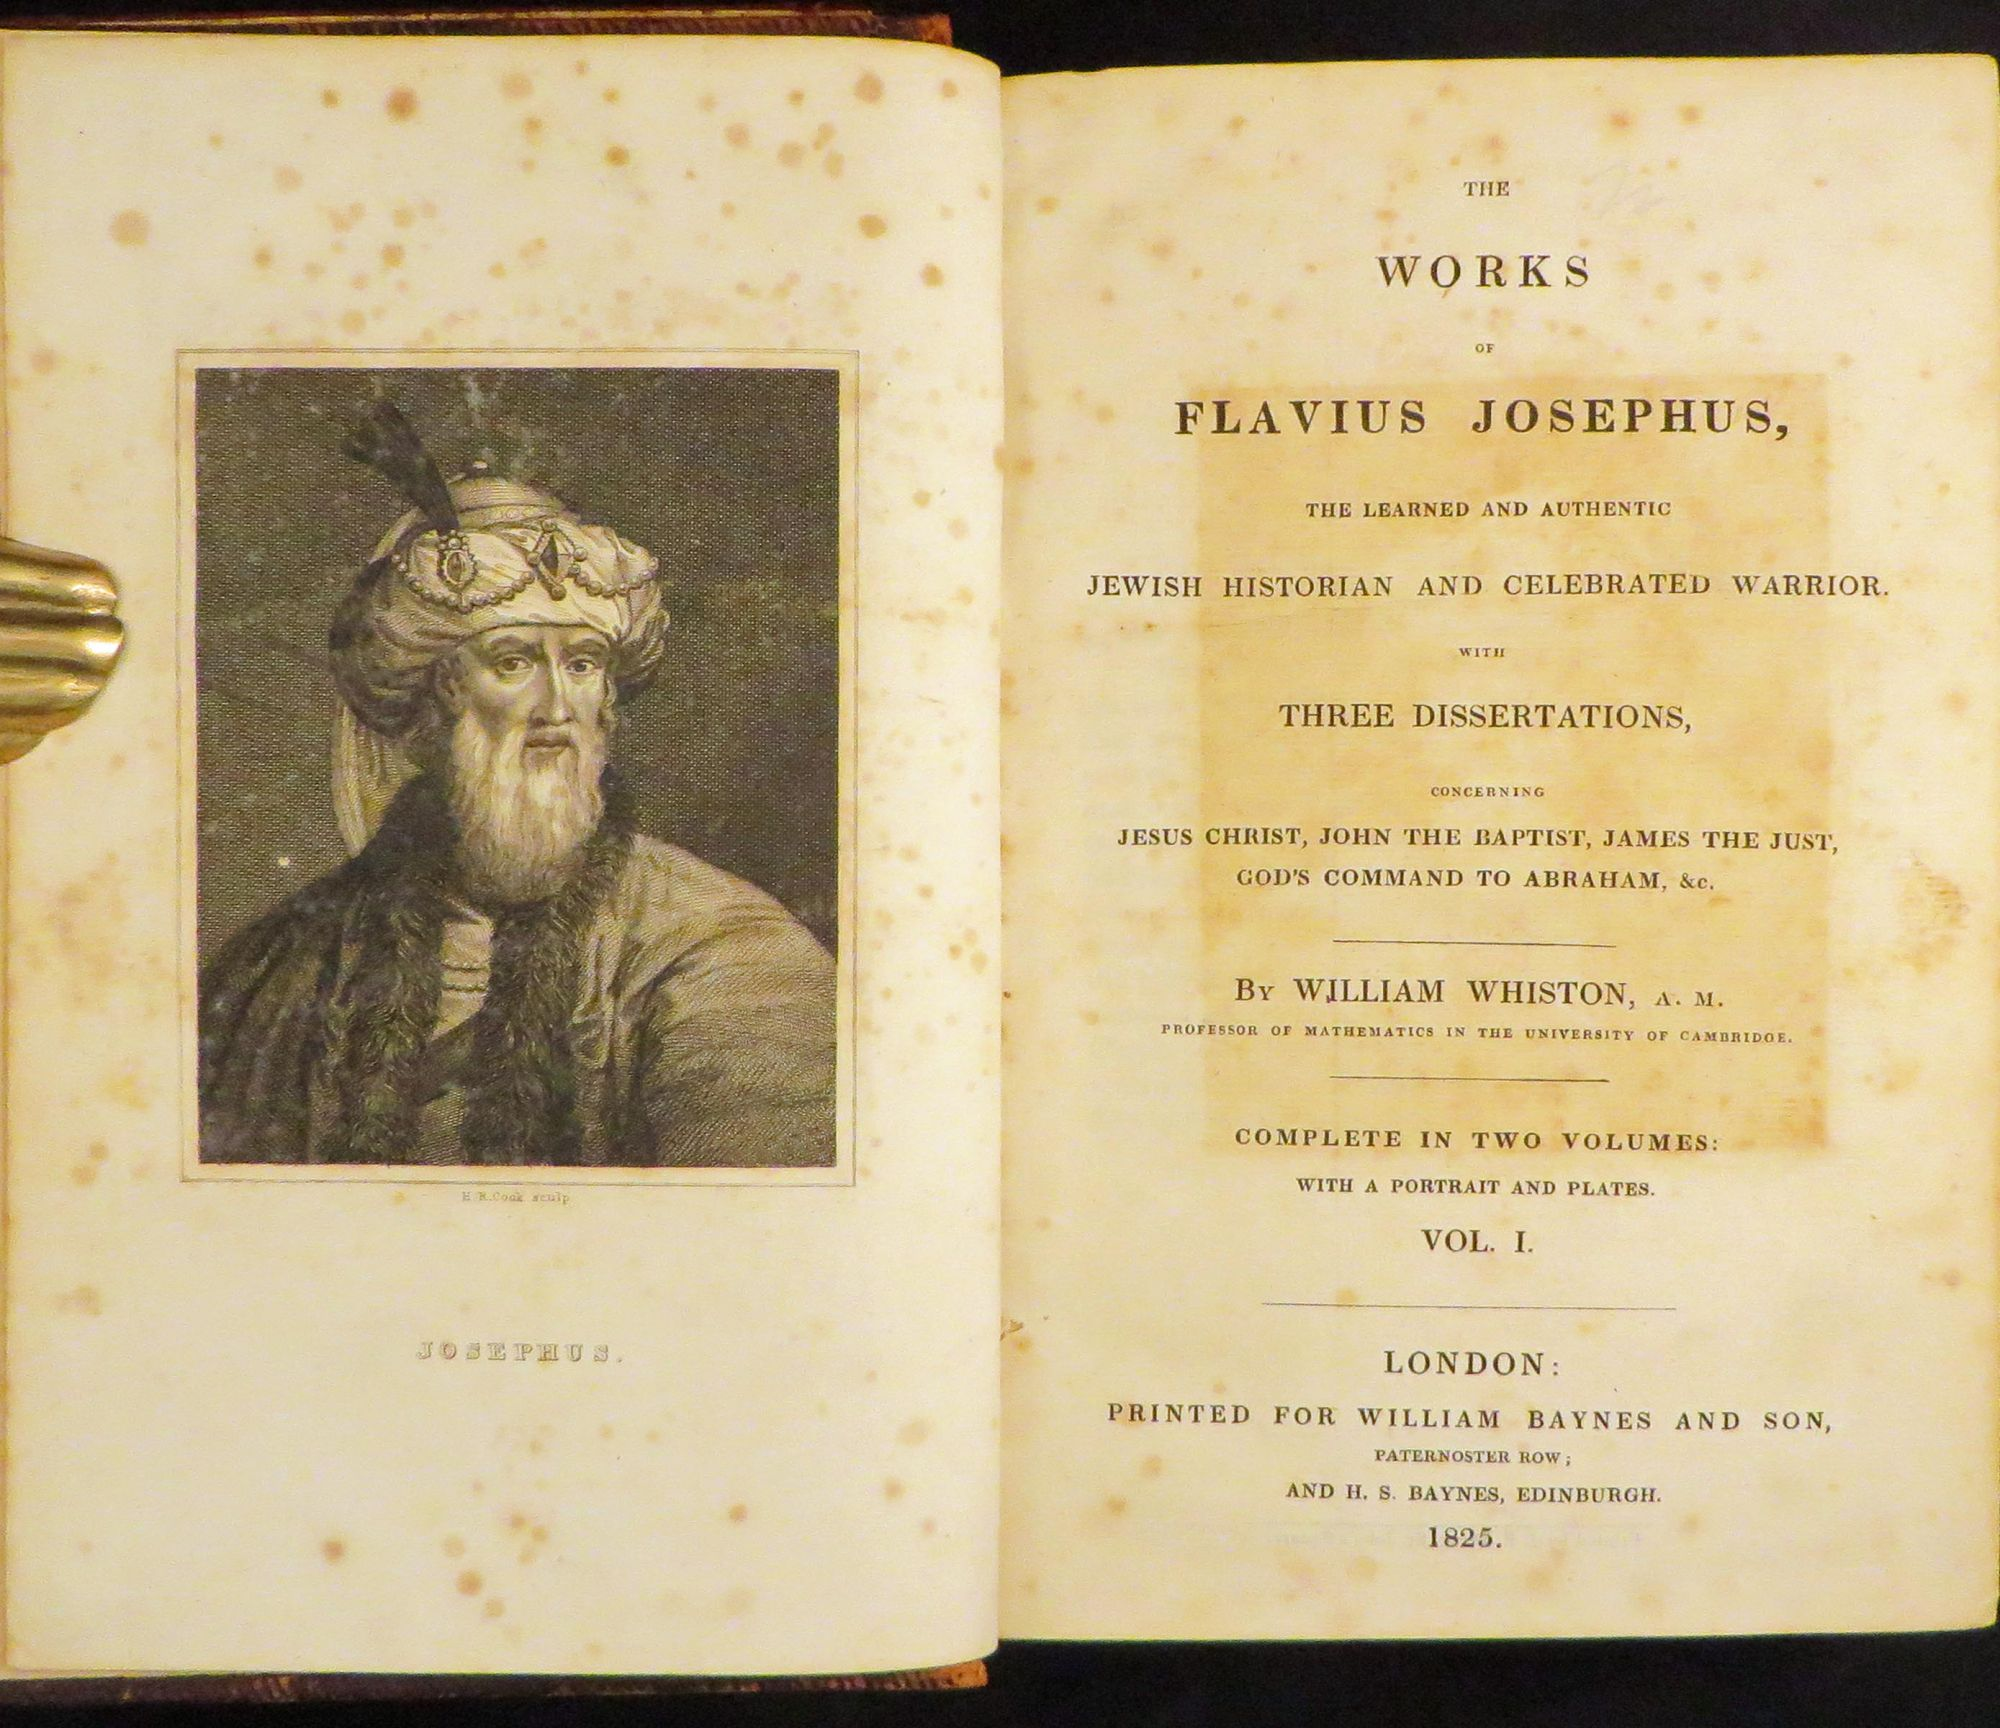 WORKS OF FLAVIUS JOSEPHUS, The Learned and Authentic Jewish Historian and Celebrated Warrior. With Three Dissertations, Concerning Jesus Christ, John the Baptist, James the Just, God's Command to Abraham. [Containing Twenty Books of the Jewish Antiquities, Seven Books of the Jewish War, &c., and The Life of Josephus, Written by Himself and the Book of Apion. [Translated...Together With Explanatory Notes and Observations] by William Whiston. Flavius Josephus.